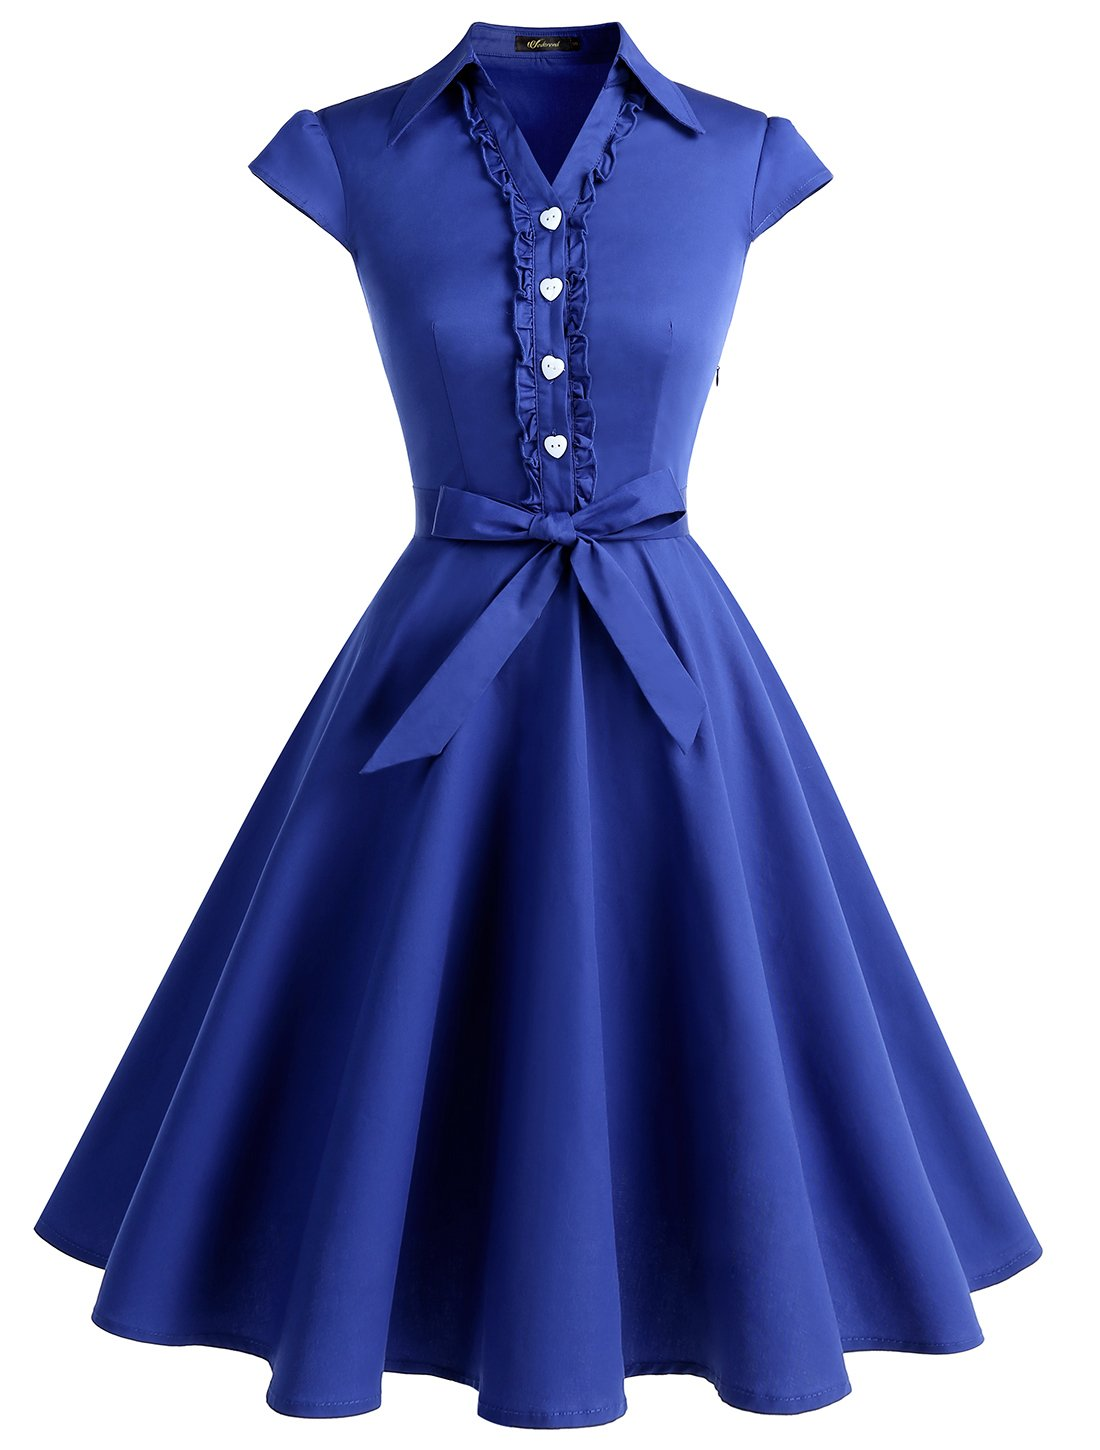 Wedtrend Women's 1950s Cap Sleeves Swing Vintage Party Dresses Multi Colored WTP10007RoyalBlueL